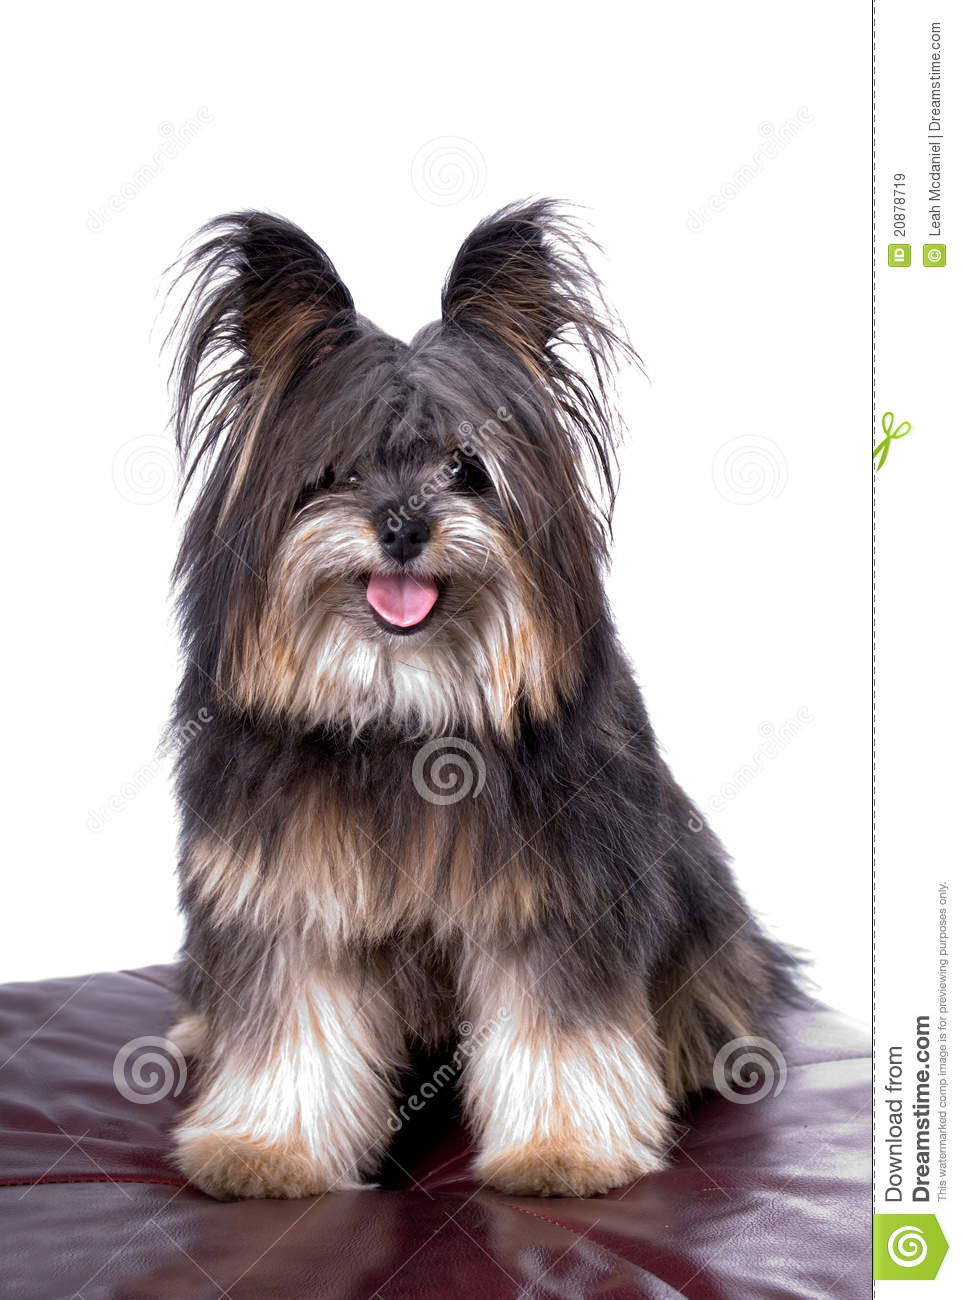 Pom/Poodle/Yorkie Mix Royalty Free Stock Images - Image: 20878719